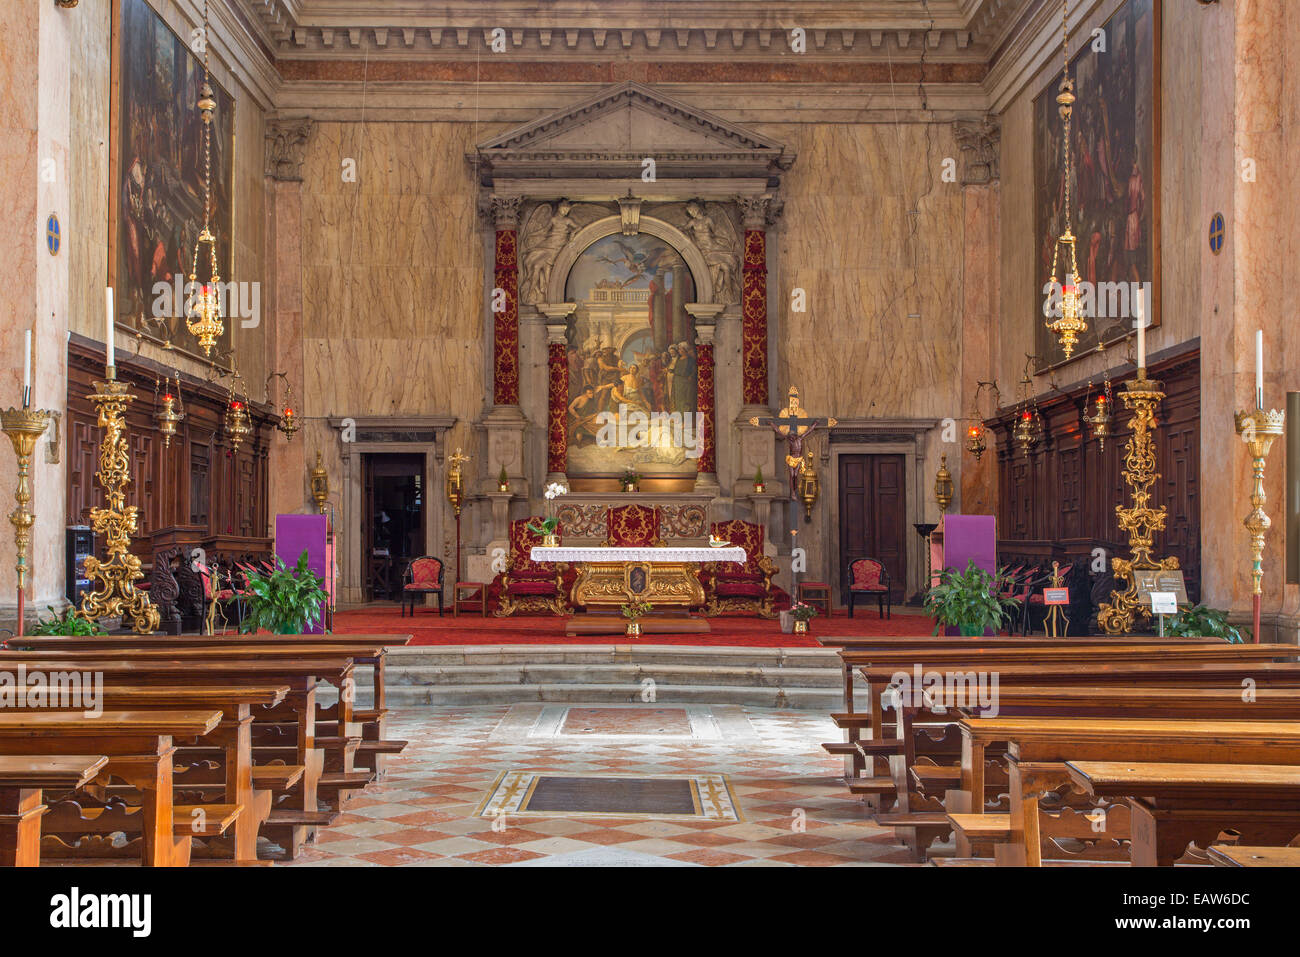 VENICE, ITALY - MARCH 13, 2014: Chiesa di San Trovaso church. - Stock Image